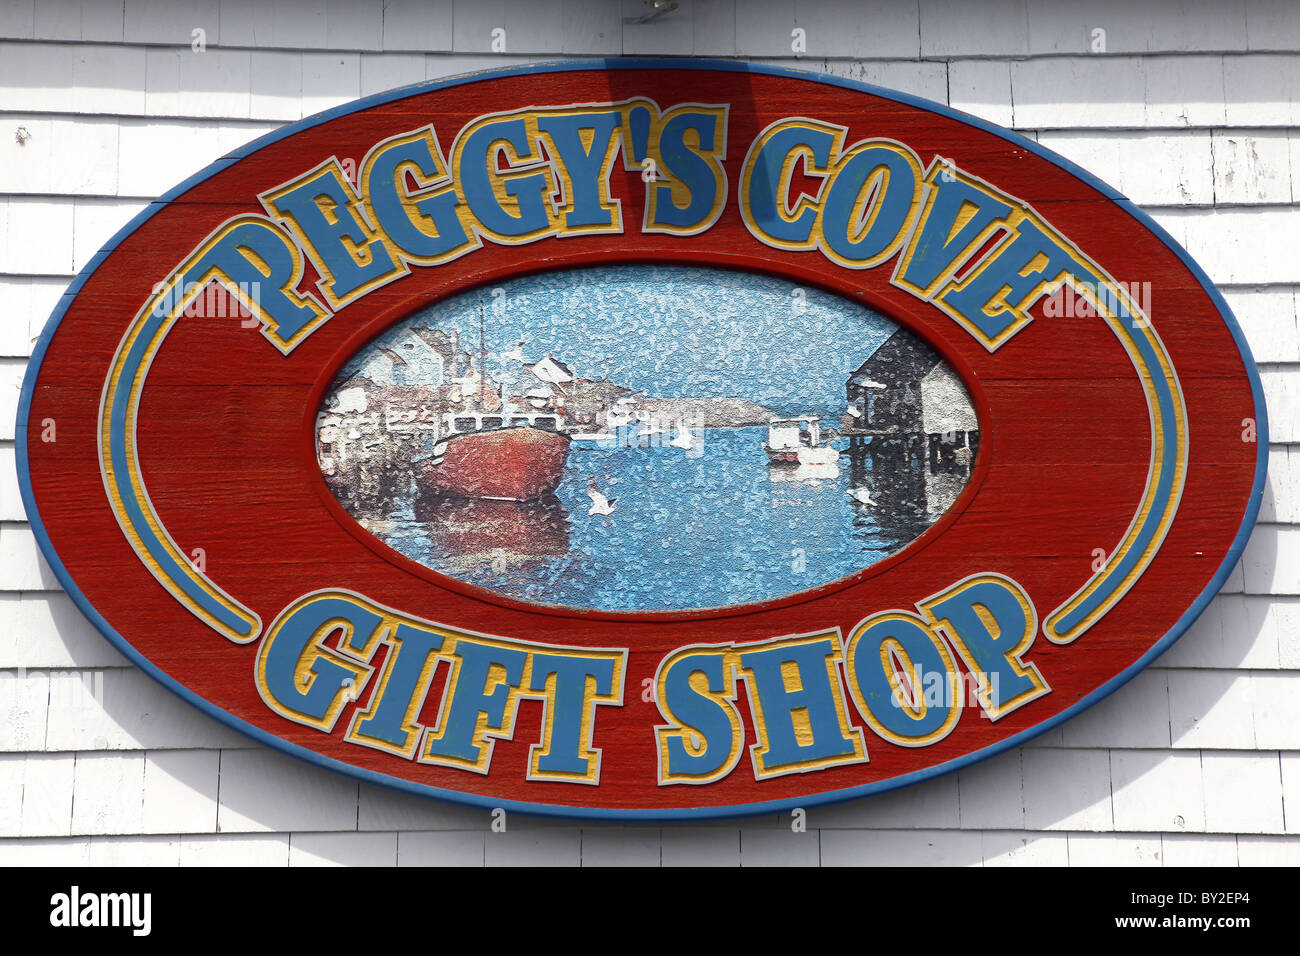 Peggys cove gift shop sign peggys cove halifax nova scotia peggys cove gift shop sign peggys cove halifax nova scotia canada peggys cove nova scotia 16 september 2009 negle Image collections